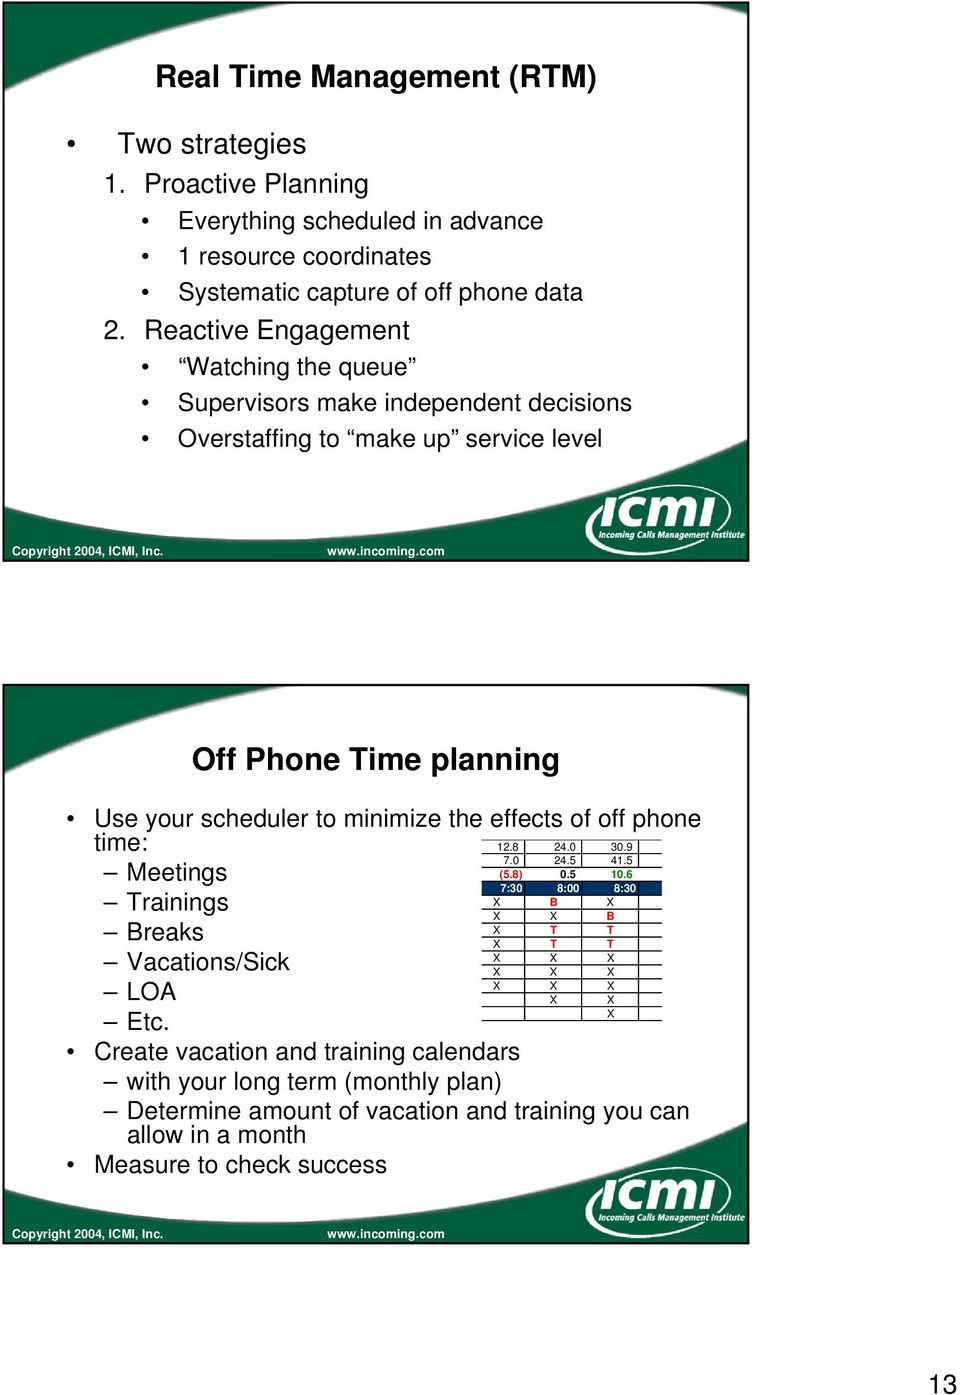 the effects of off phone time: 12.8 24.0 30.9 7.0 24.5 41.5 Meetings (5.8) 0.5 10.